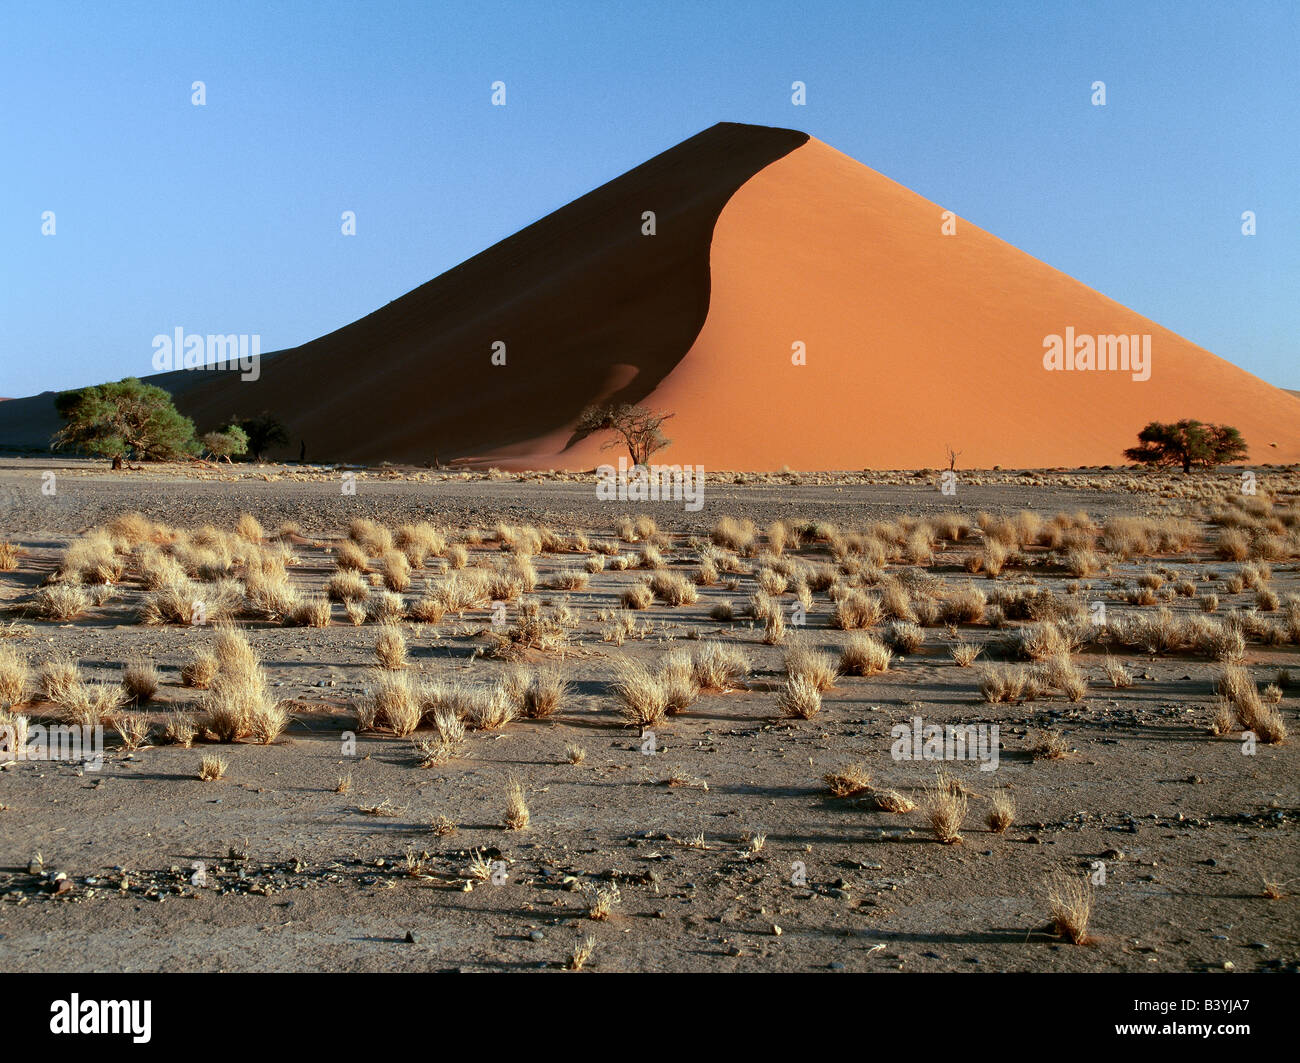 Namibia, Namib Desert, Sesriem. In early morning and late afternoon, the dunes at Sesriem in the Namib-Naukluft Stock Photo